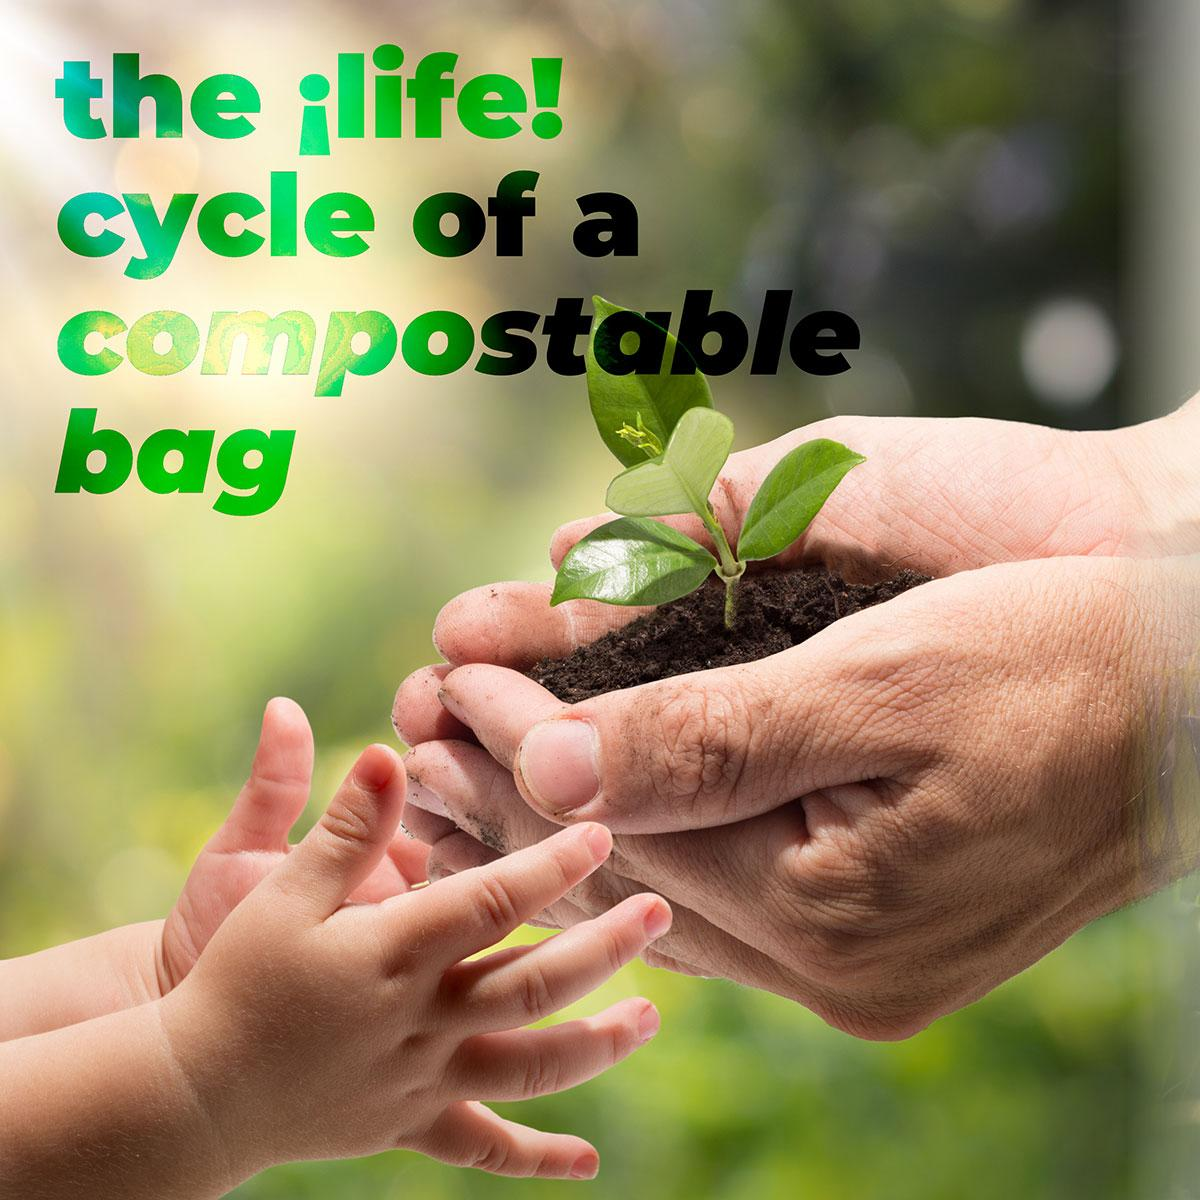 life-cicle-of-a-compostable-bag-0